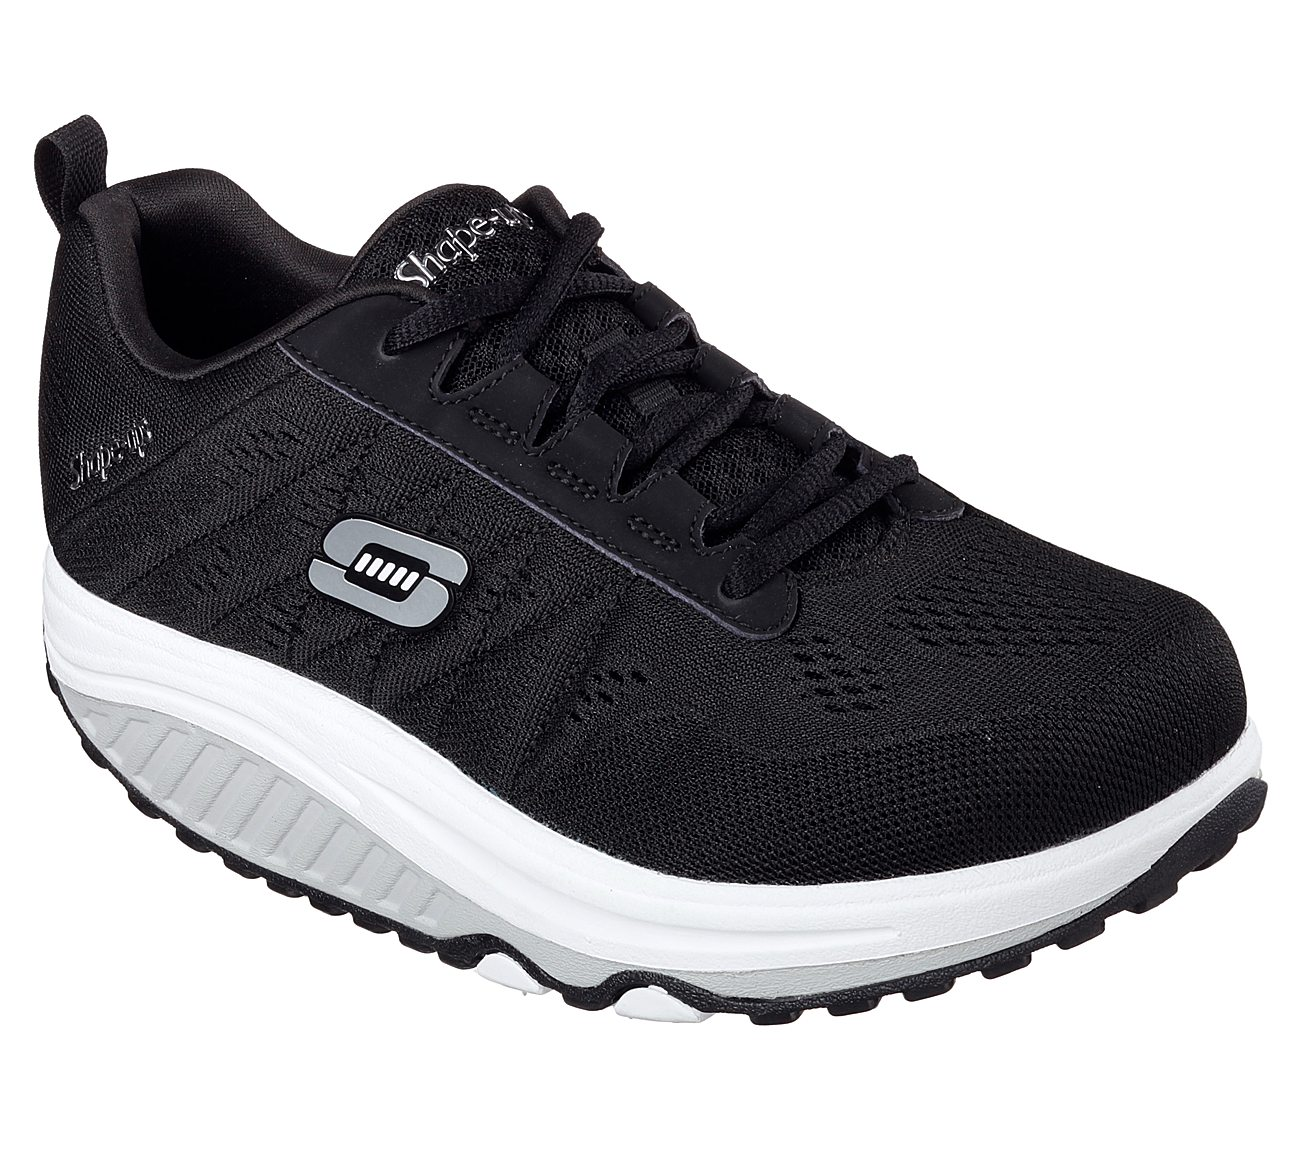 6be7f2098a98 Buy SKECHERS Shape-ups 2.0 SKECHERS Shape-ups Shoes only £77.00